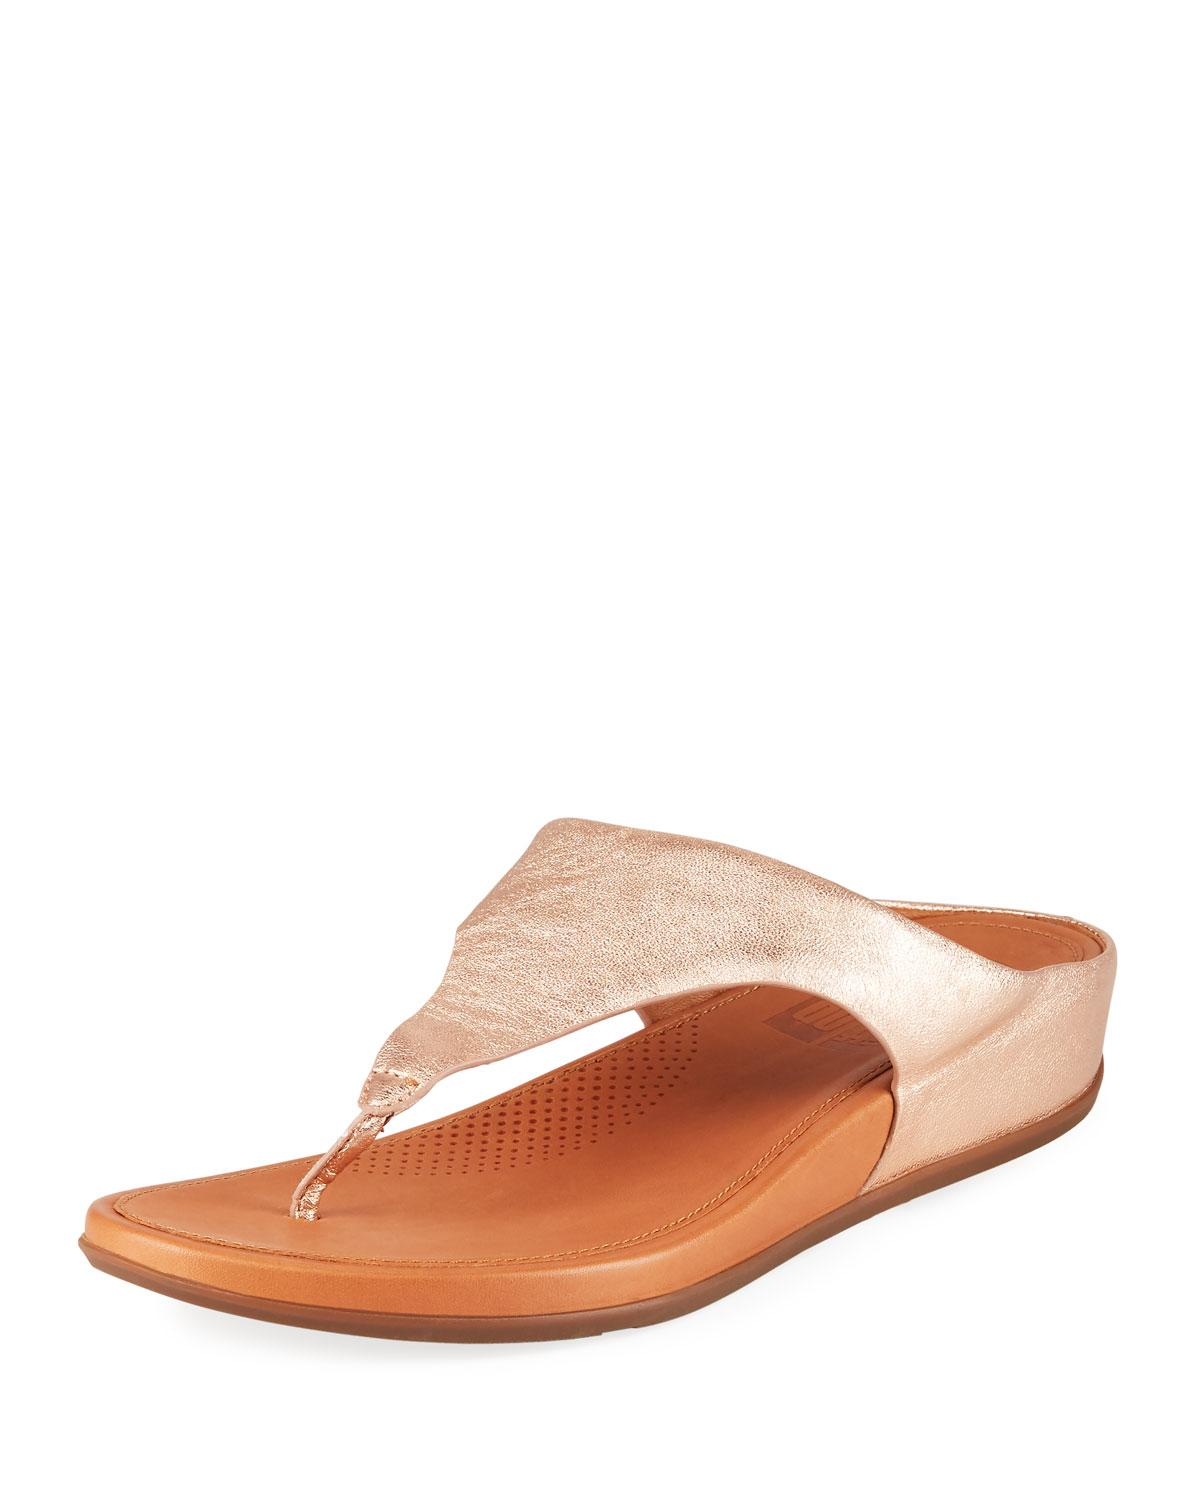 ab62be390 Fitflop. Women s Banda Metallic Leather Thong Sandals